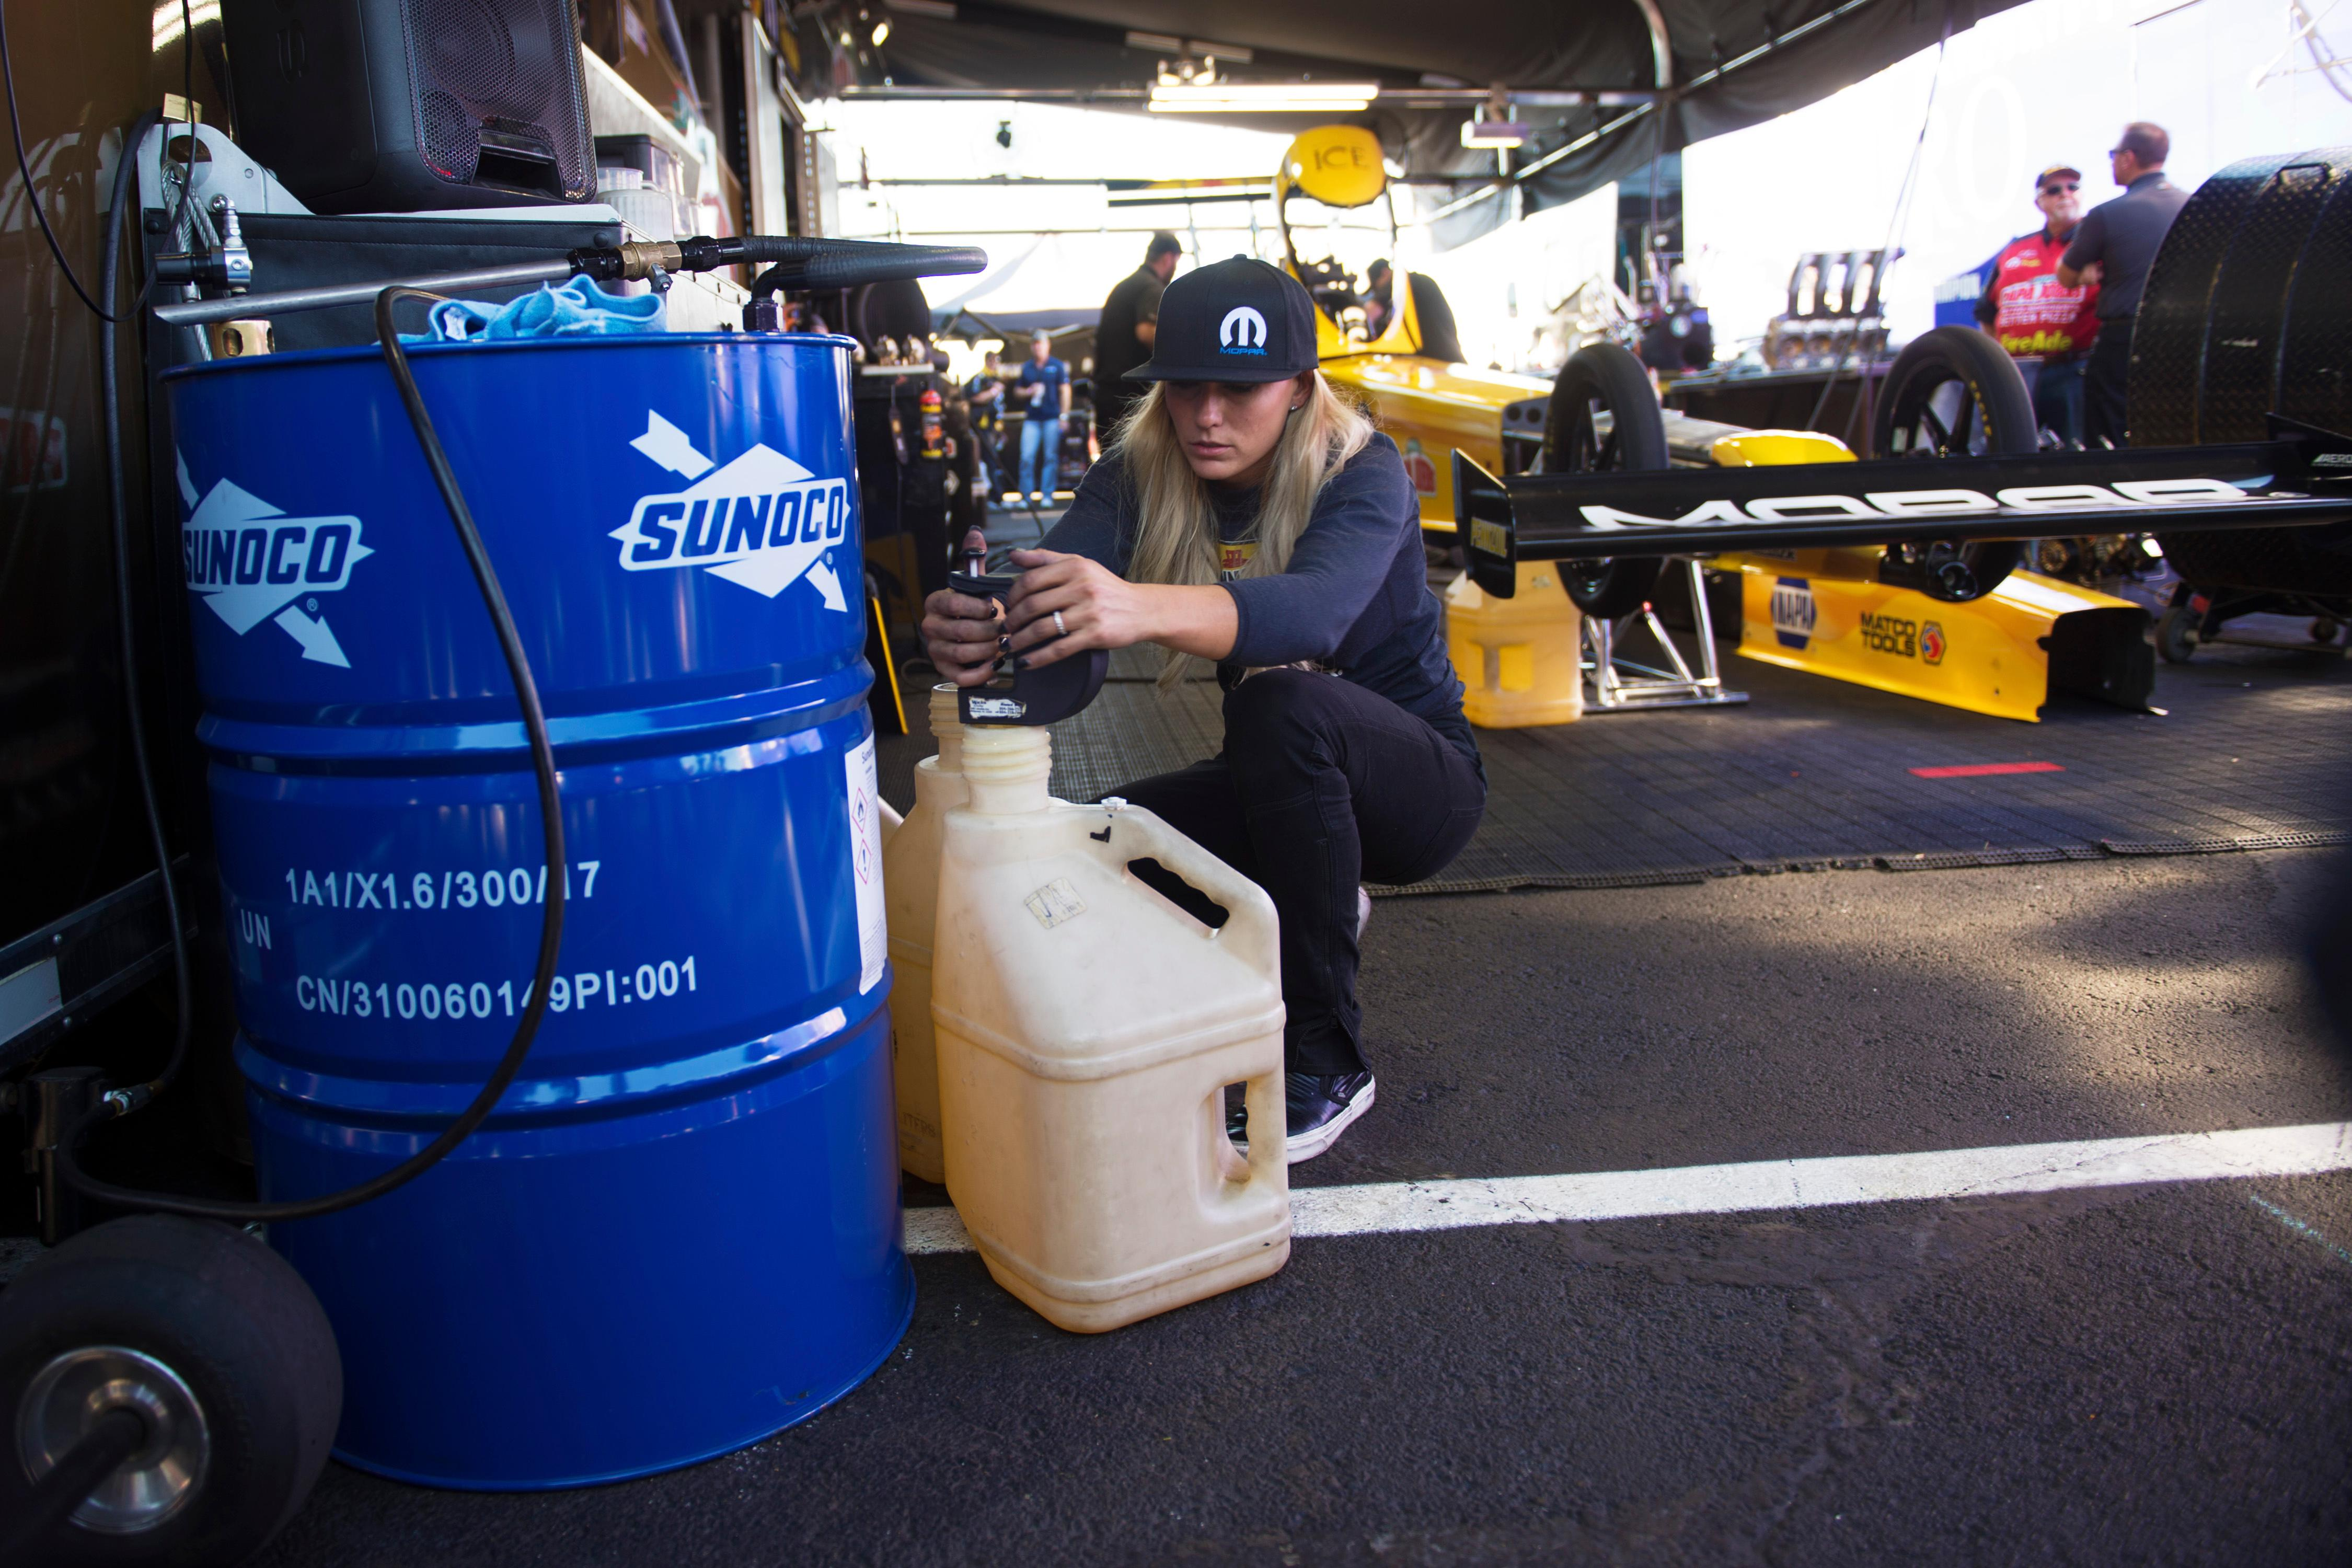 Top Fuel driver Leah Pritchett blends her fuel between heats during the NHRA Toyota Nationals Sunday, October 29, 2017, at The Strip at the Las Vegas Motor Speedway. CREDIT: Sam Morris/Las Vegas News Bureau